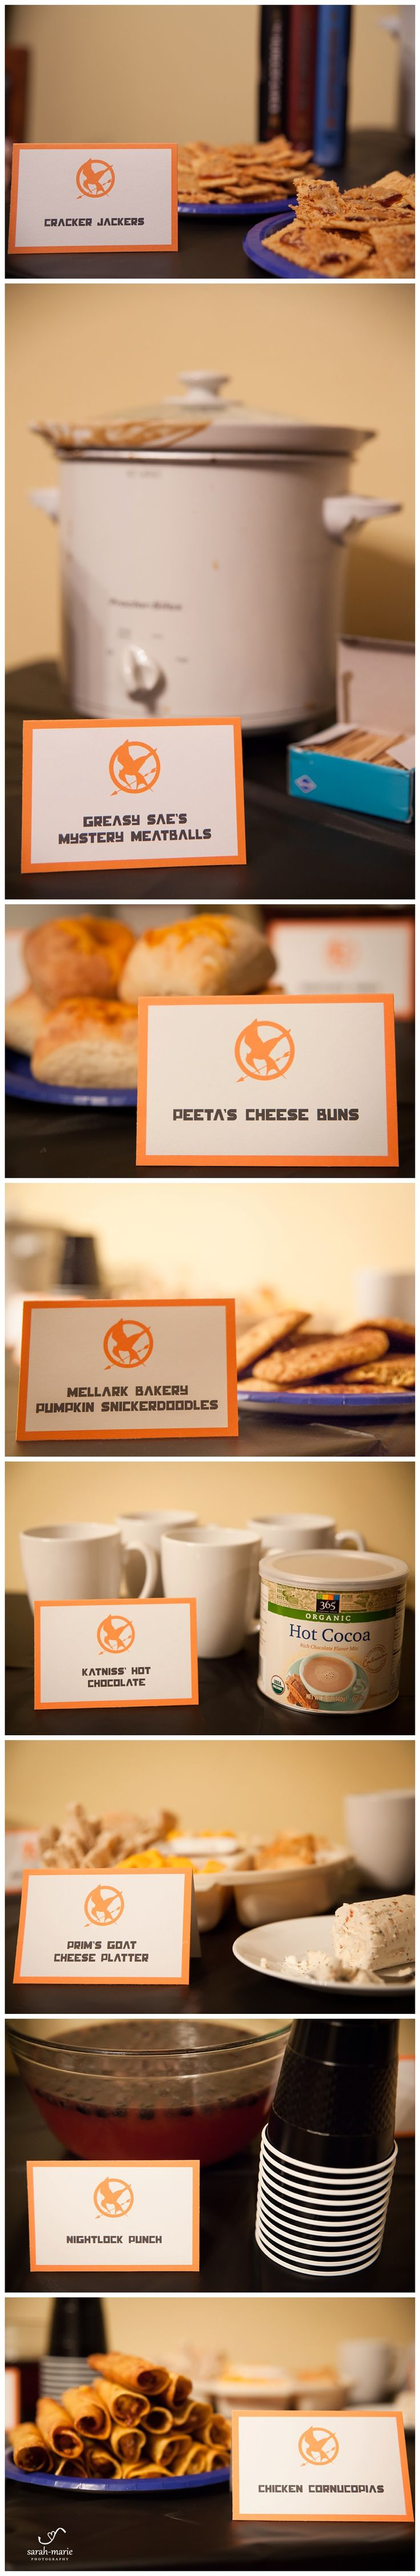 Hunger Games party food ideas